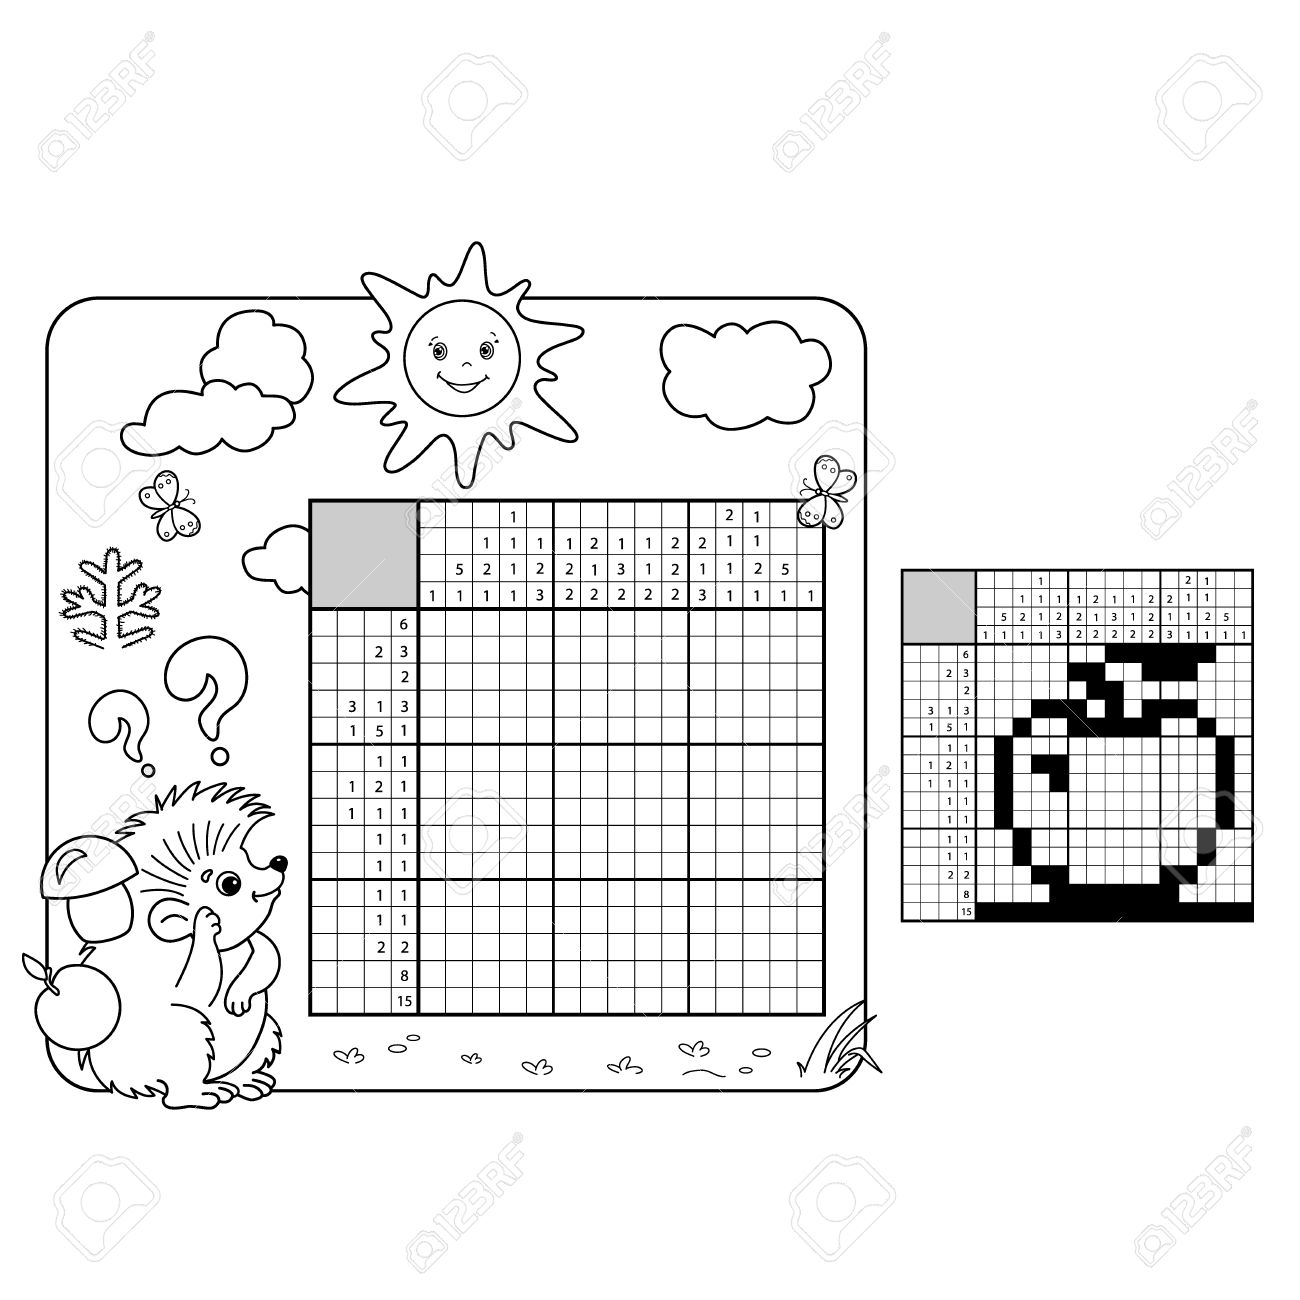 Education Puzzle Game For School Children Apple Black And White Japanese Crossword With Answer